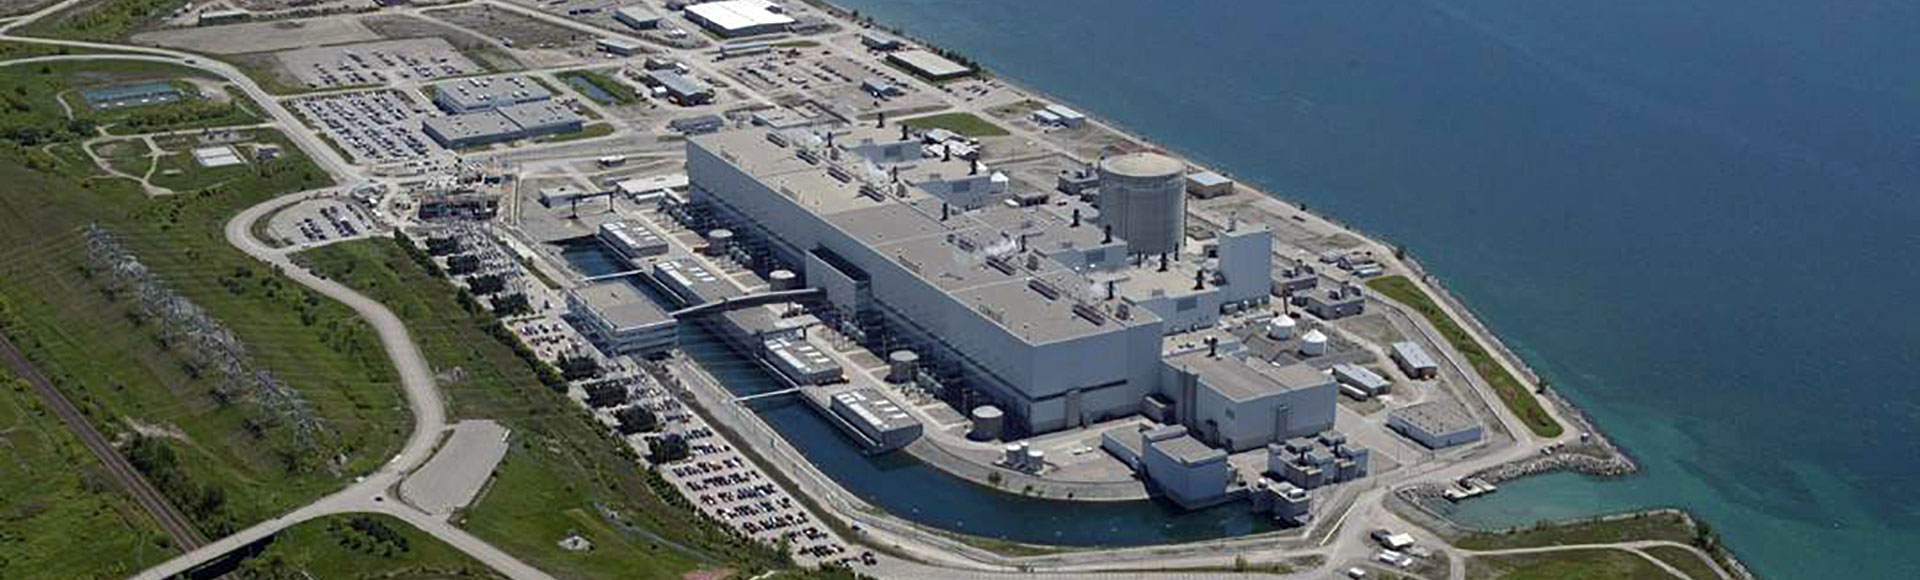 Darlington and Pickering Nuclear Generating station project